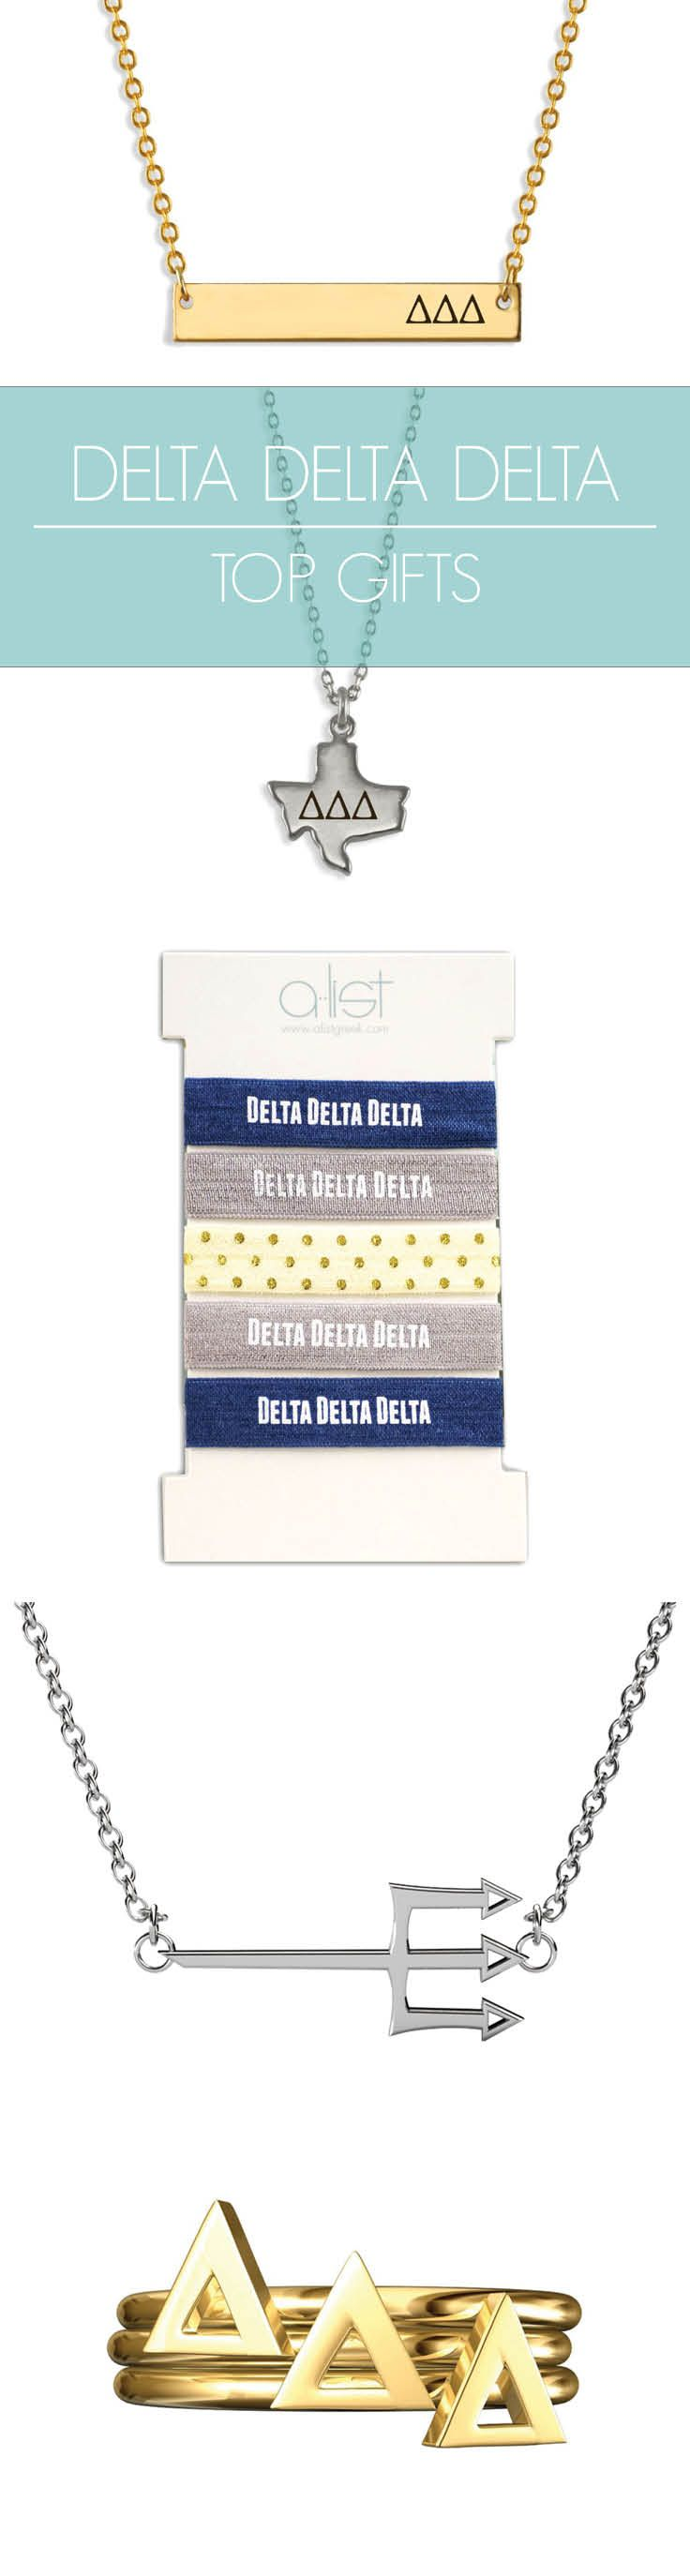 Top Delta Delta Delta Gifts for you and your sisters! This season's must-haves for all things Tri Delta // #sorority www.alistgreek.com